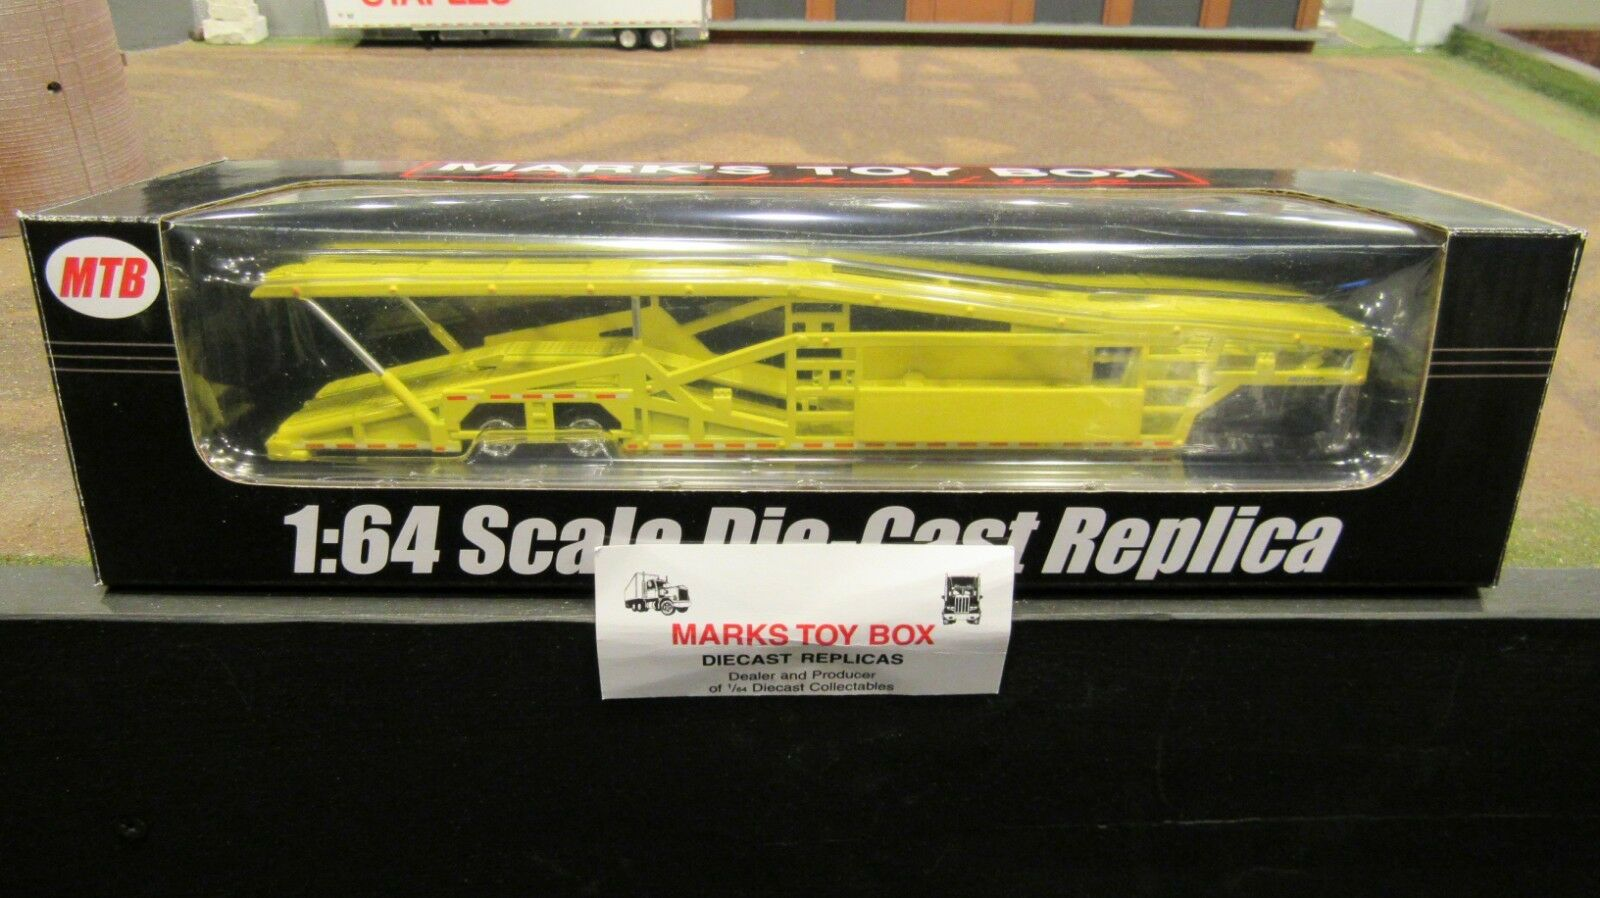 MTB-1637 YELLOW 5 CAR TRANSPORT TRANSPORTER CARRIER TRAILER 1 64 SPECCAST